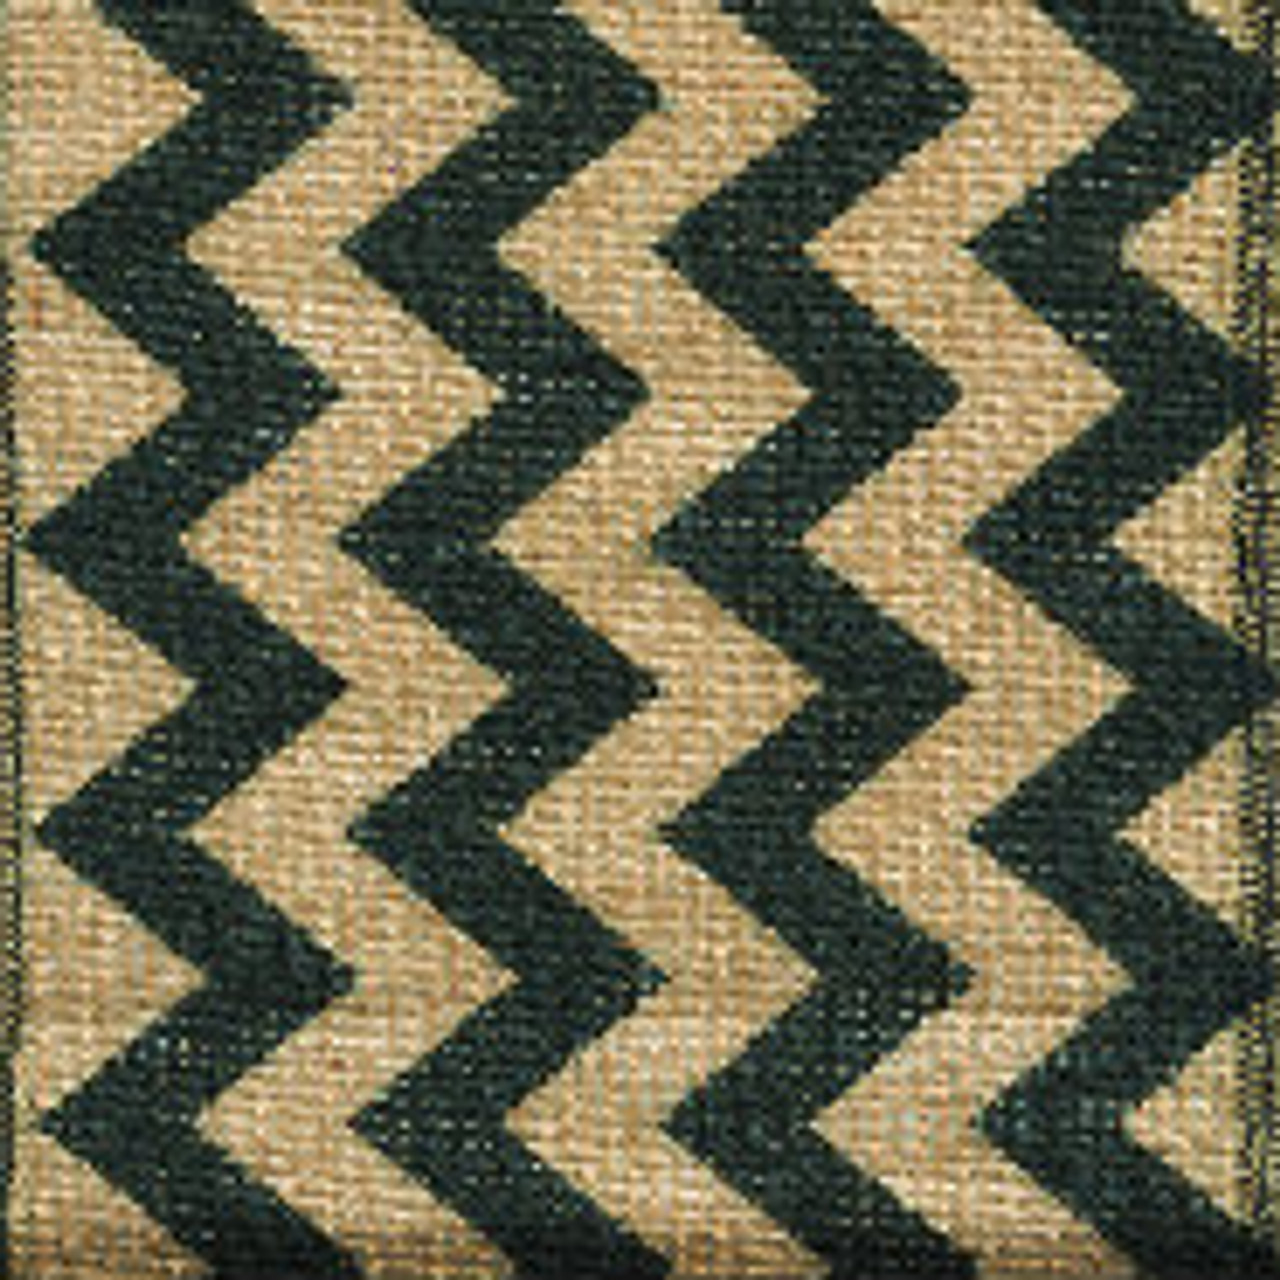 Black Burlap Zag Striped Ribbon